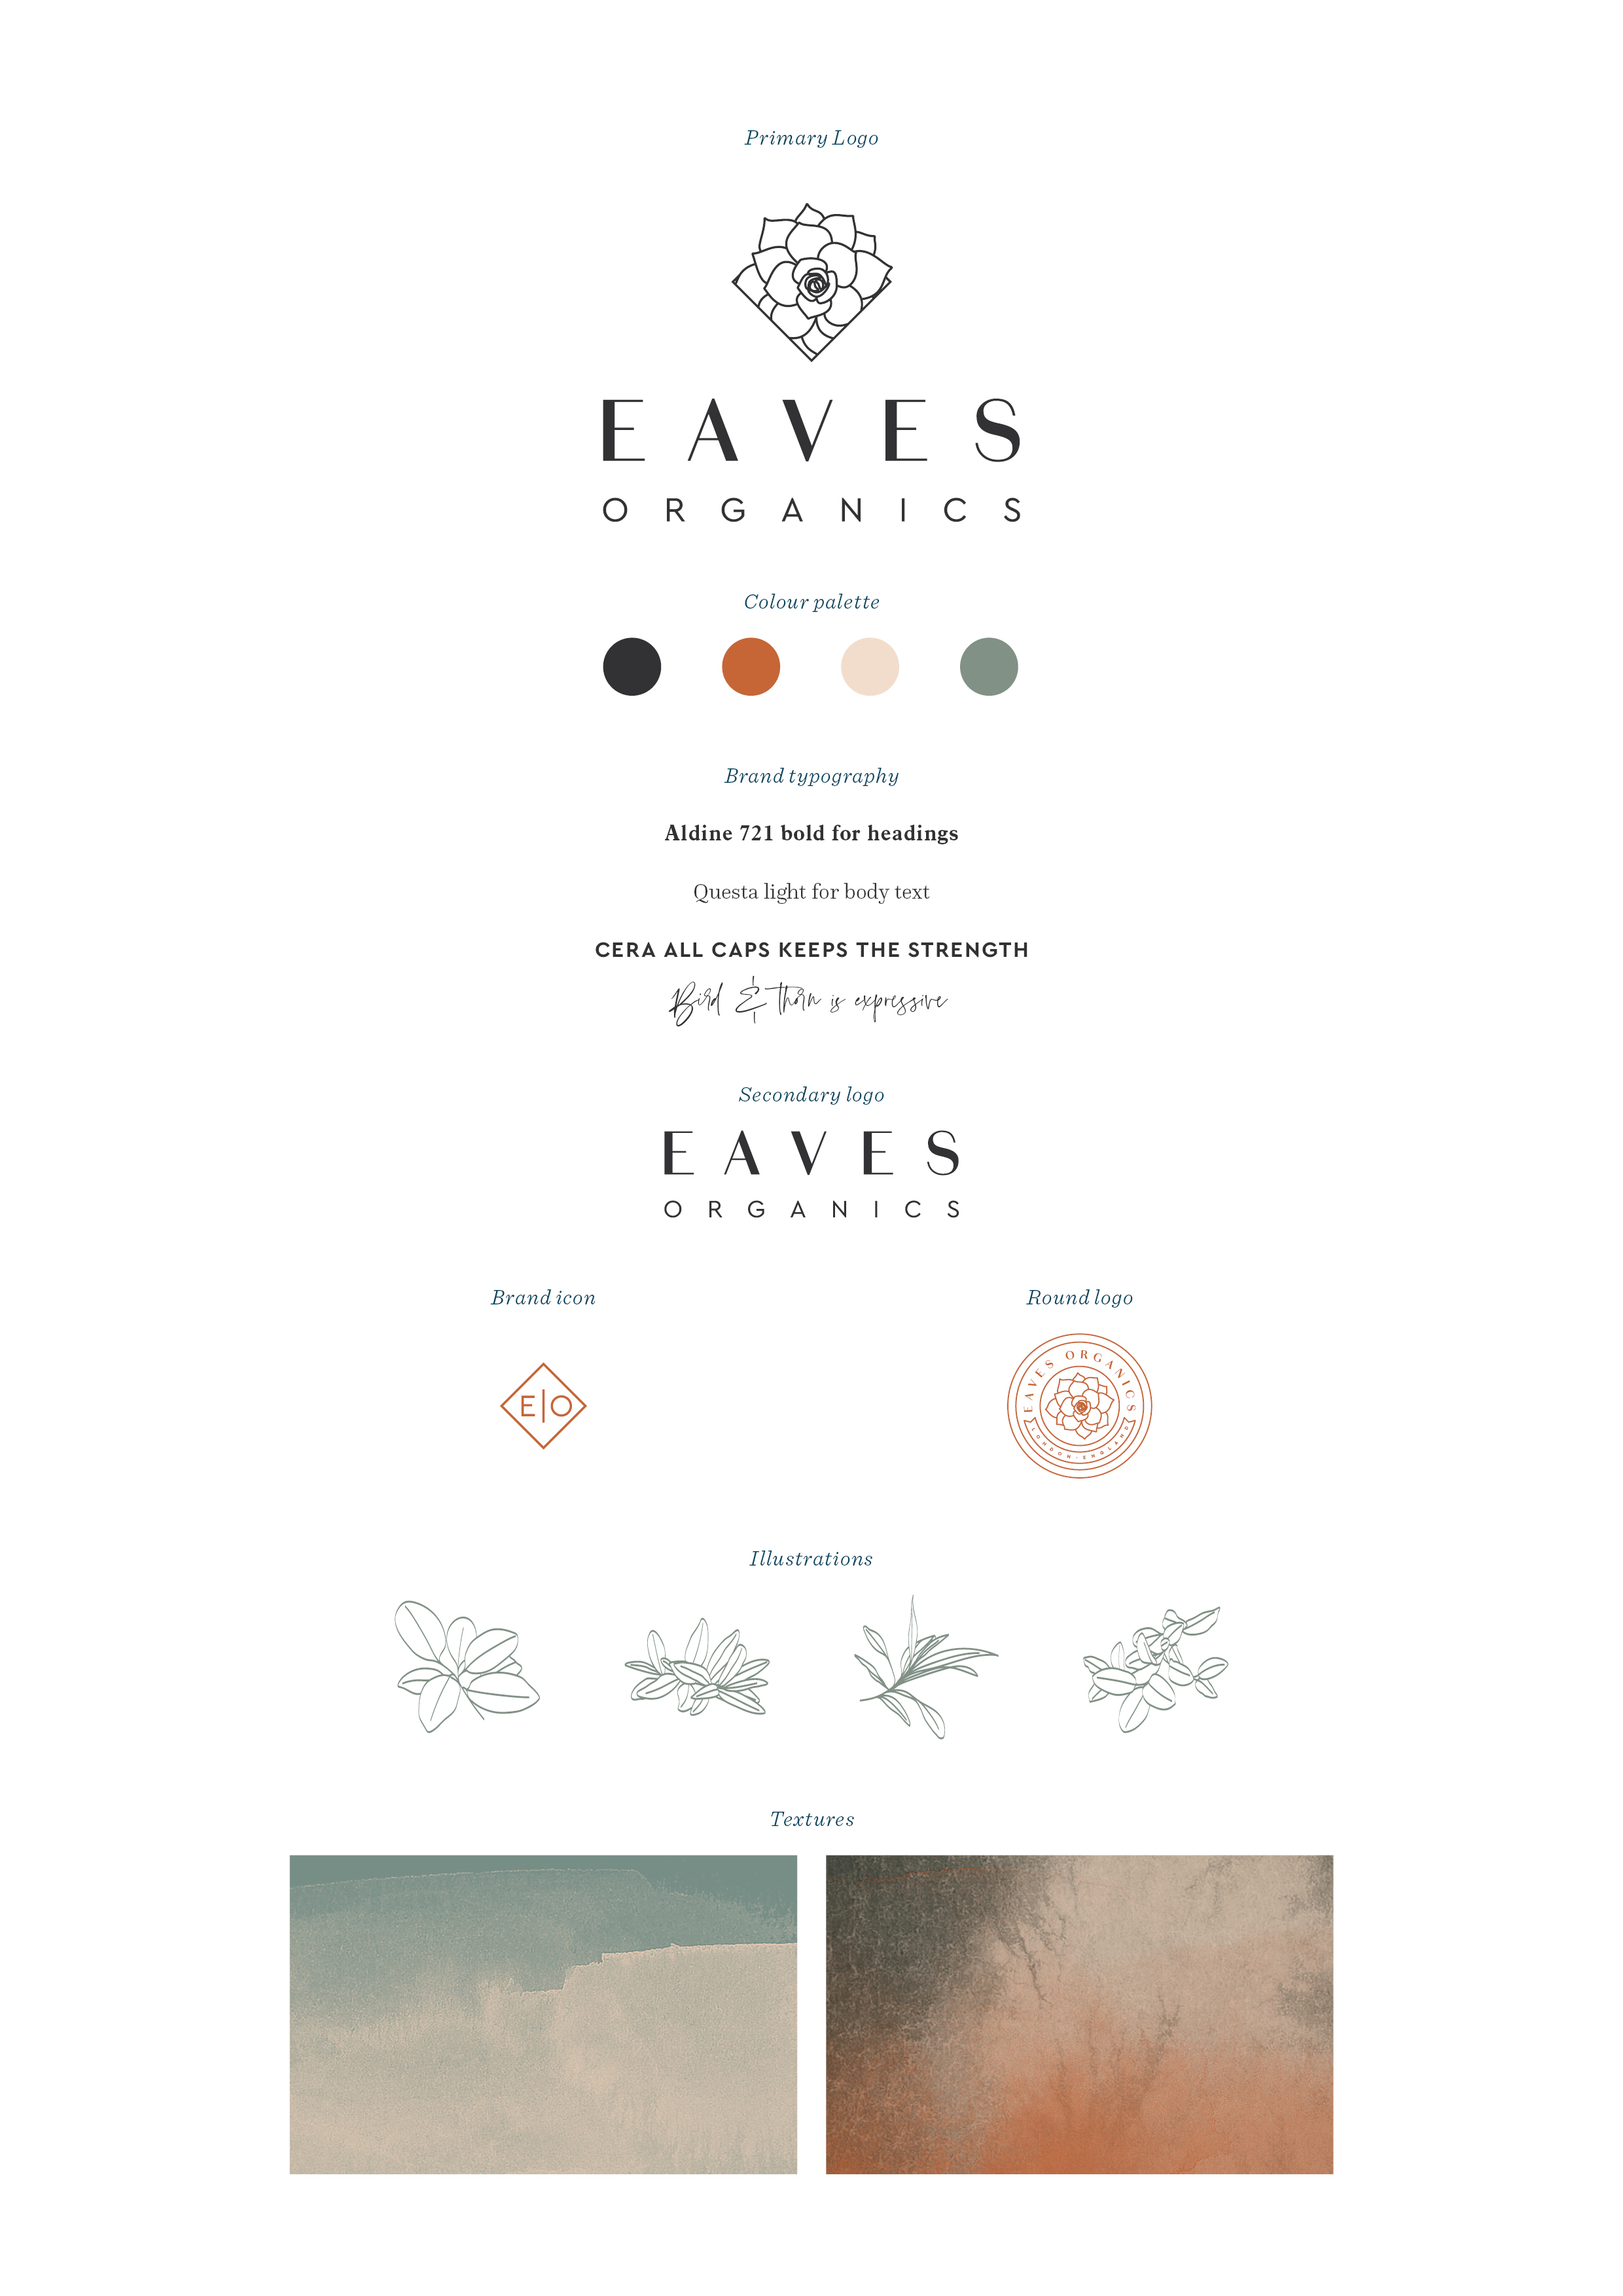 Eaves organics, branding and logo design by ditto creative, boutique branding agency in kent